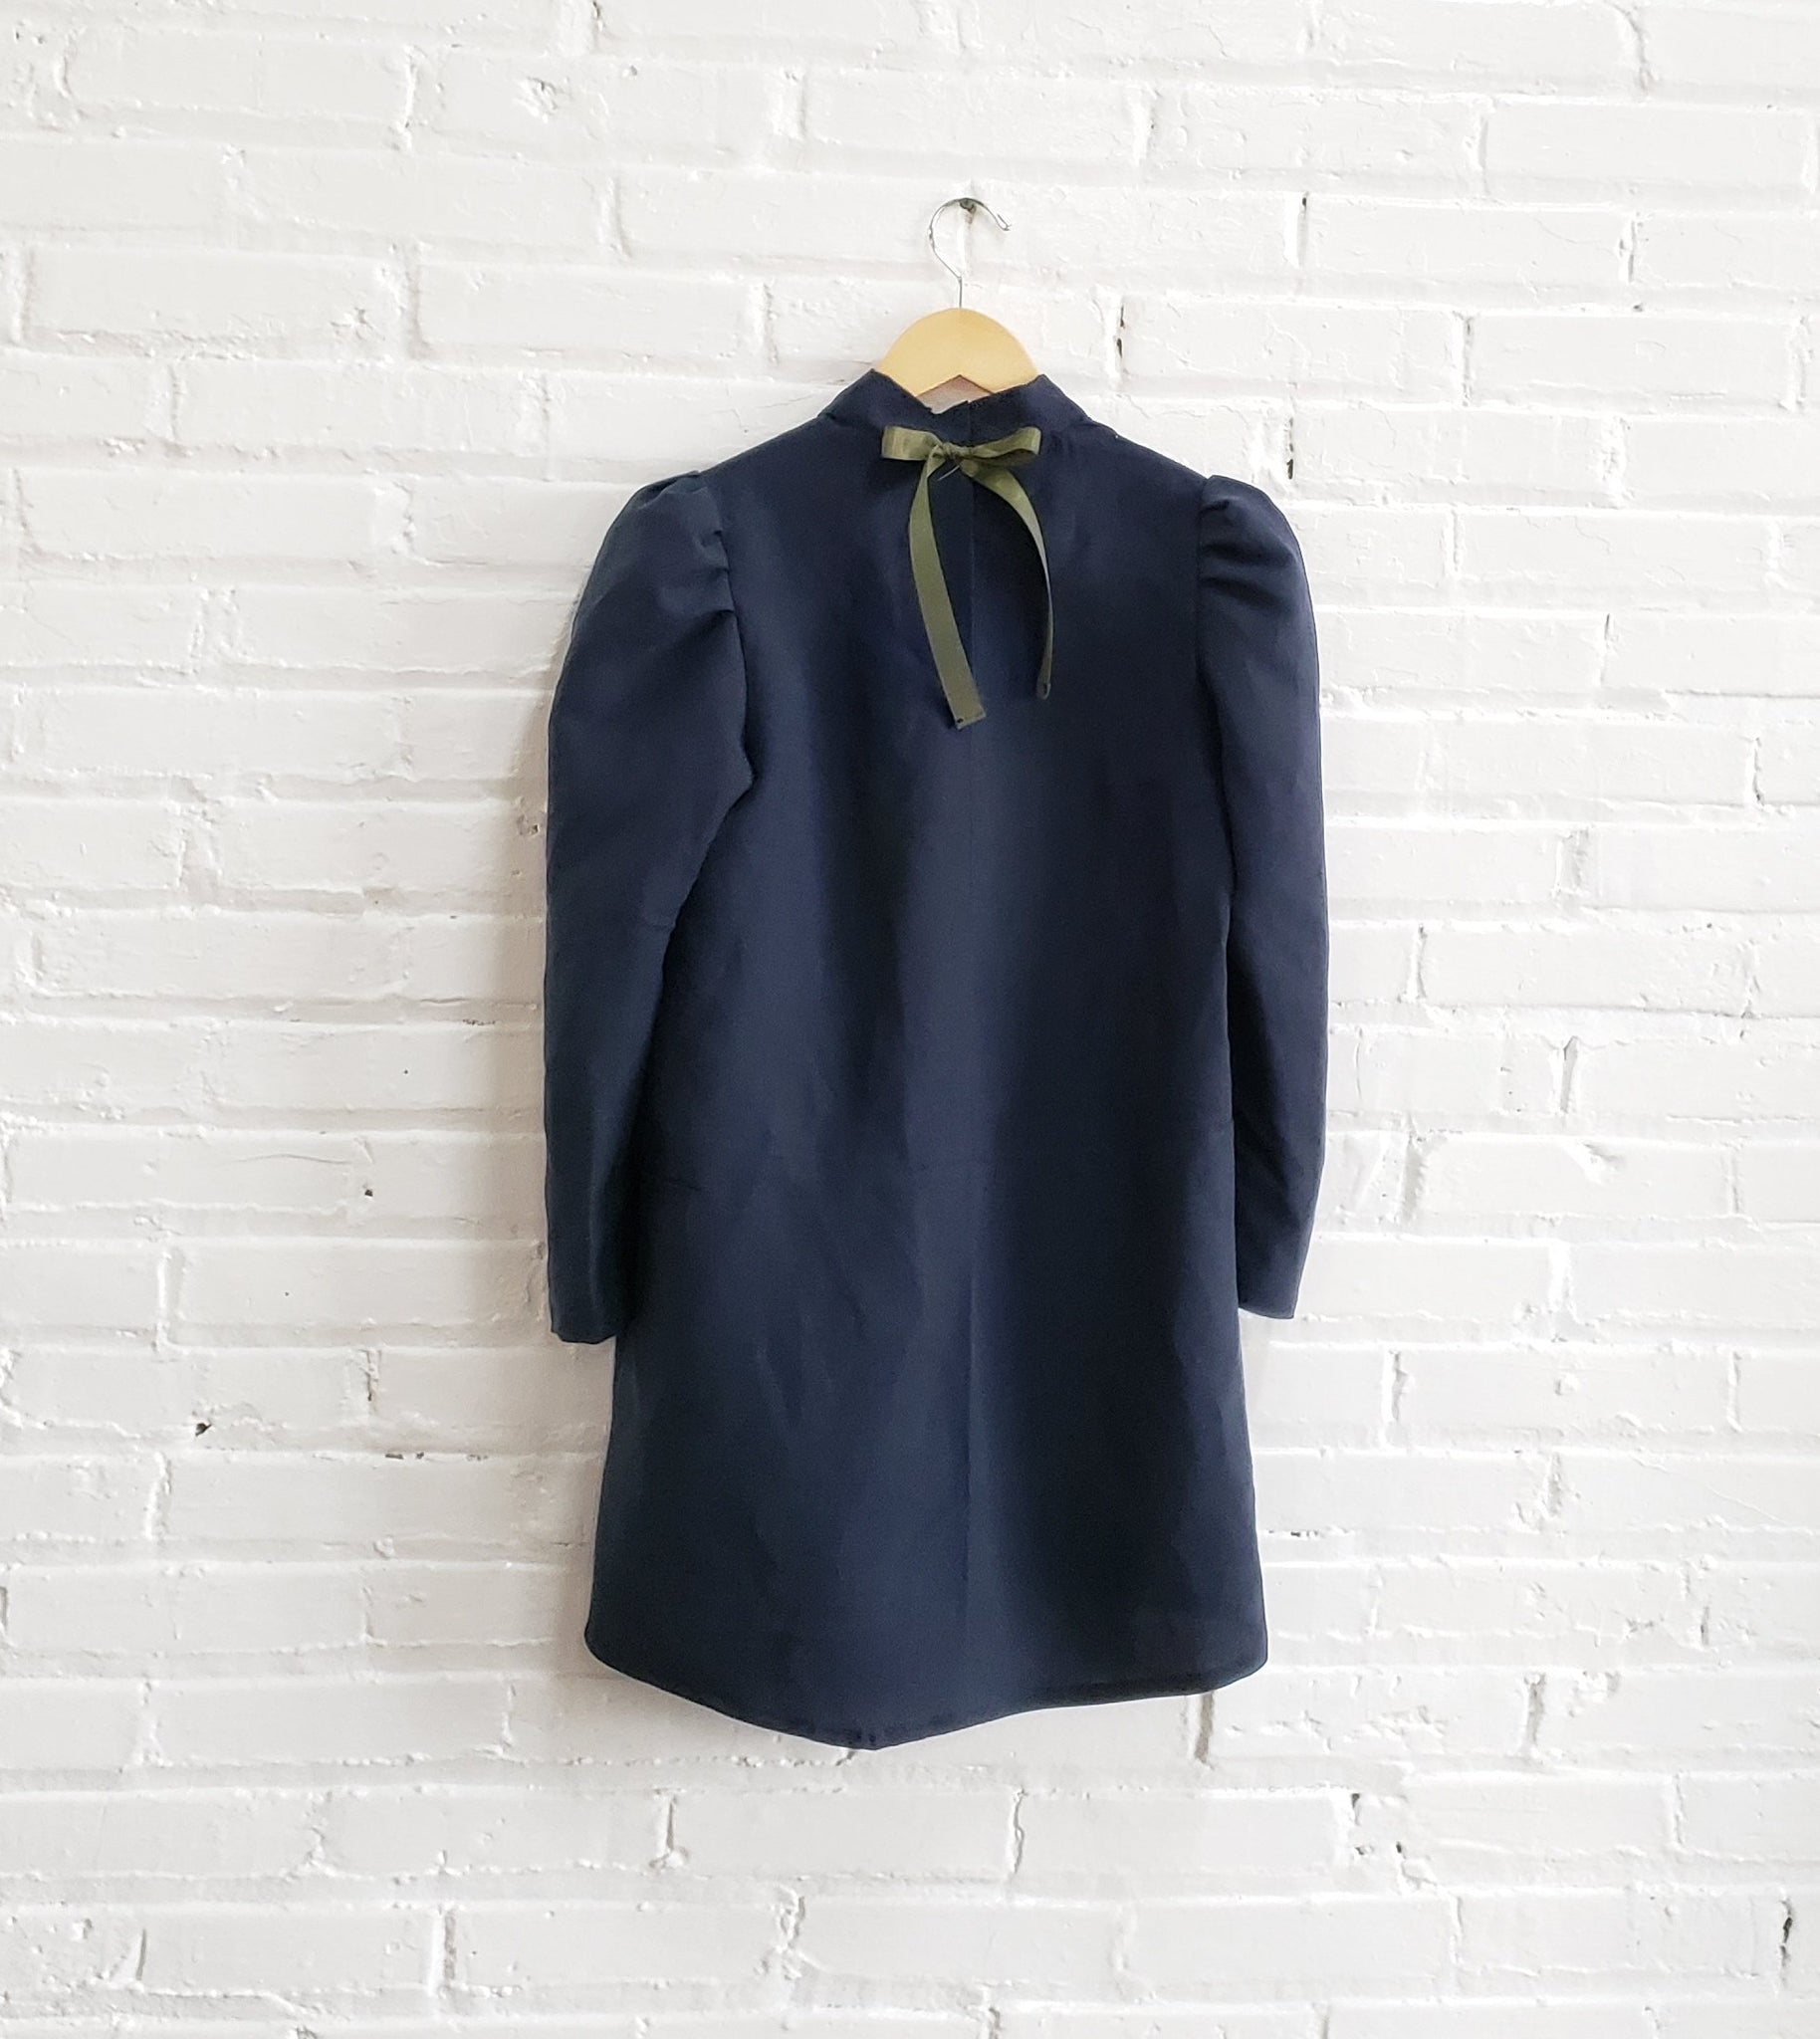 navy blue mini dress with puffy sleeves and olive green ribbon tie hanging on white brick wall